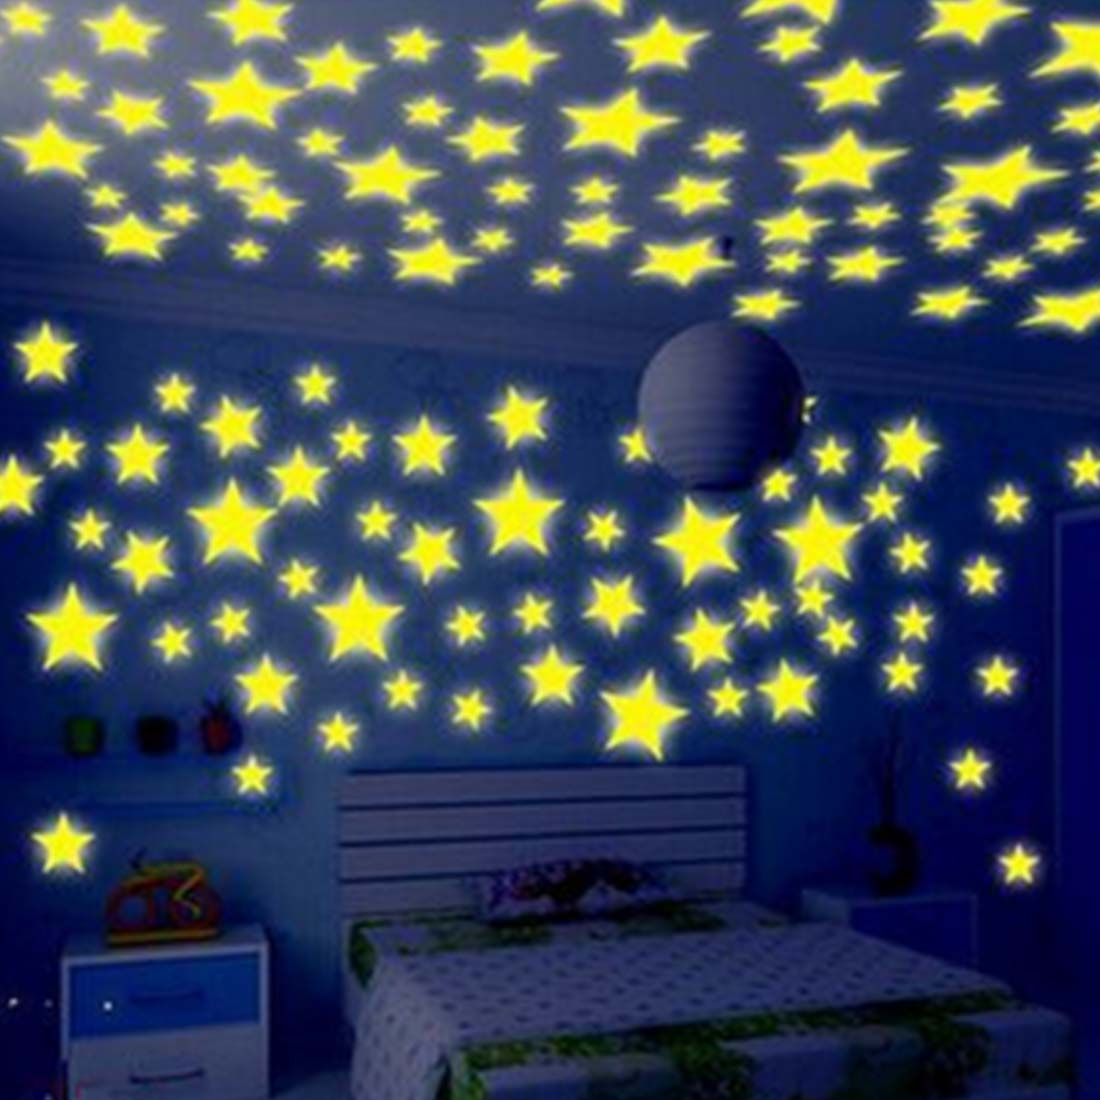 100 pcs/set Luminous PVC Decal Glow In The Dark Baby Kids Bedroom Home Decor Color Stars Luminous Fluorescent Wall Sticker Decal(China (Mainland))